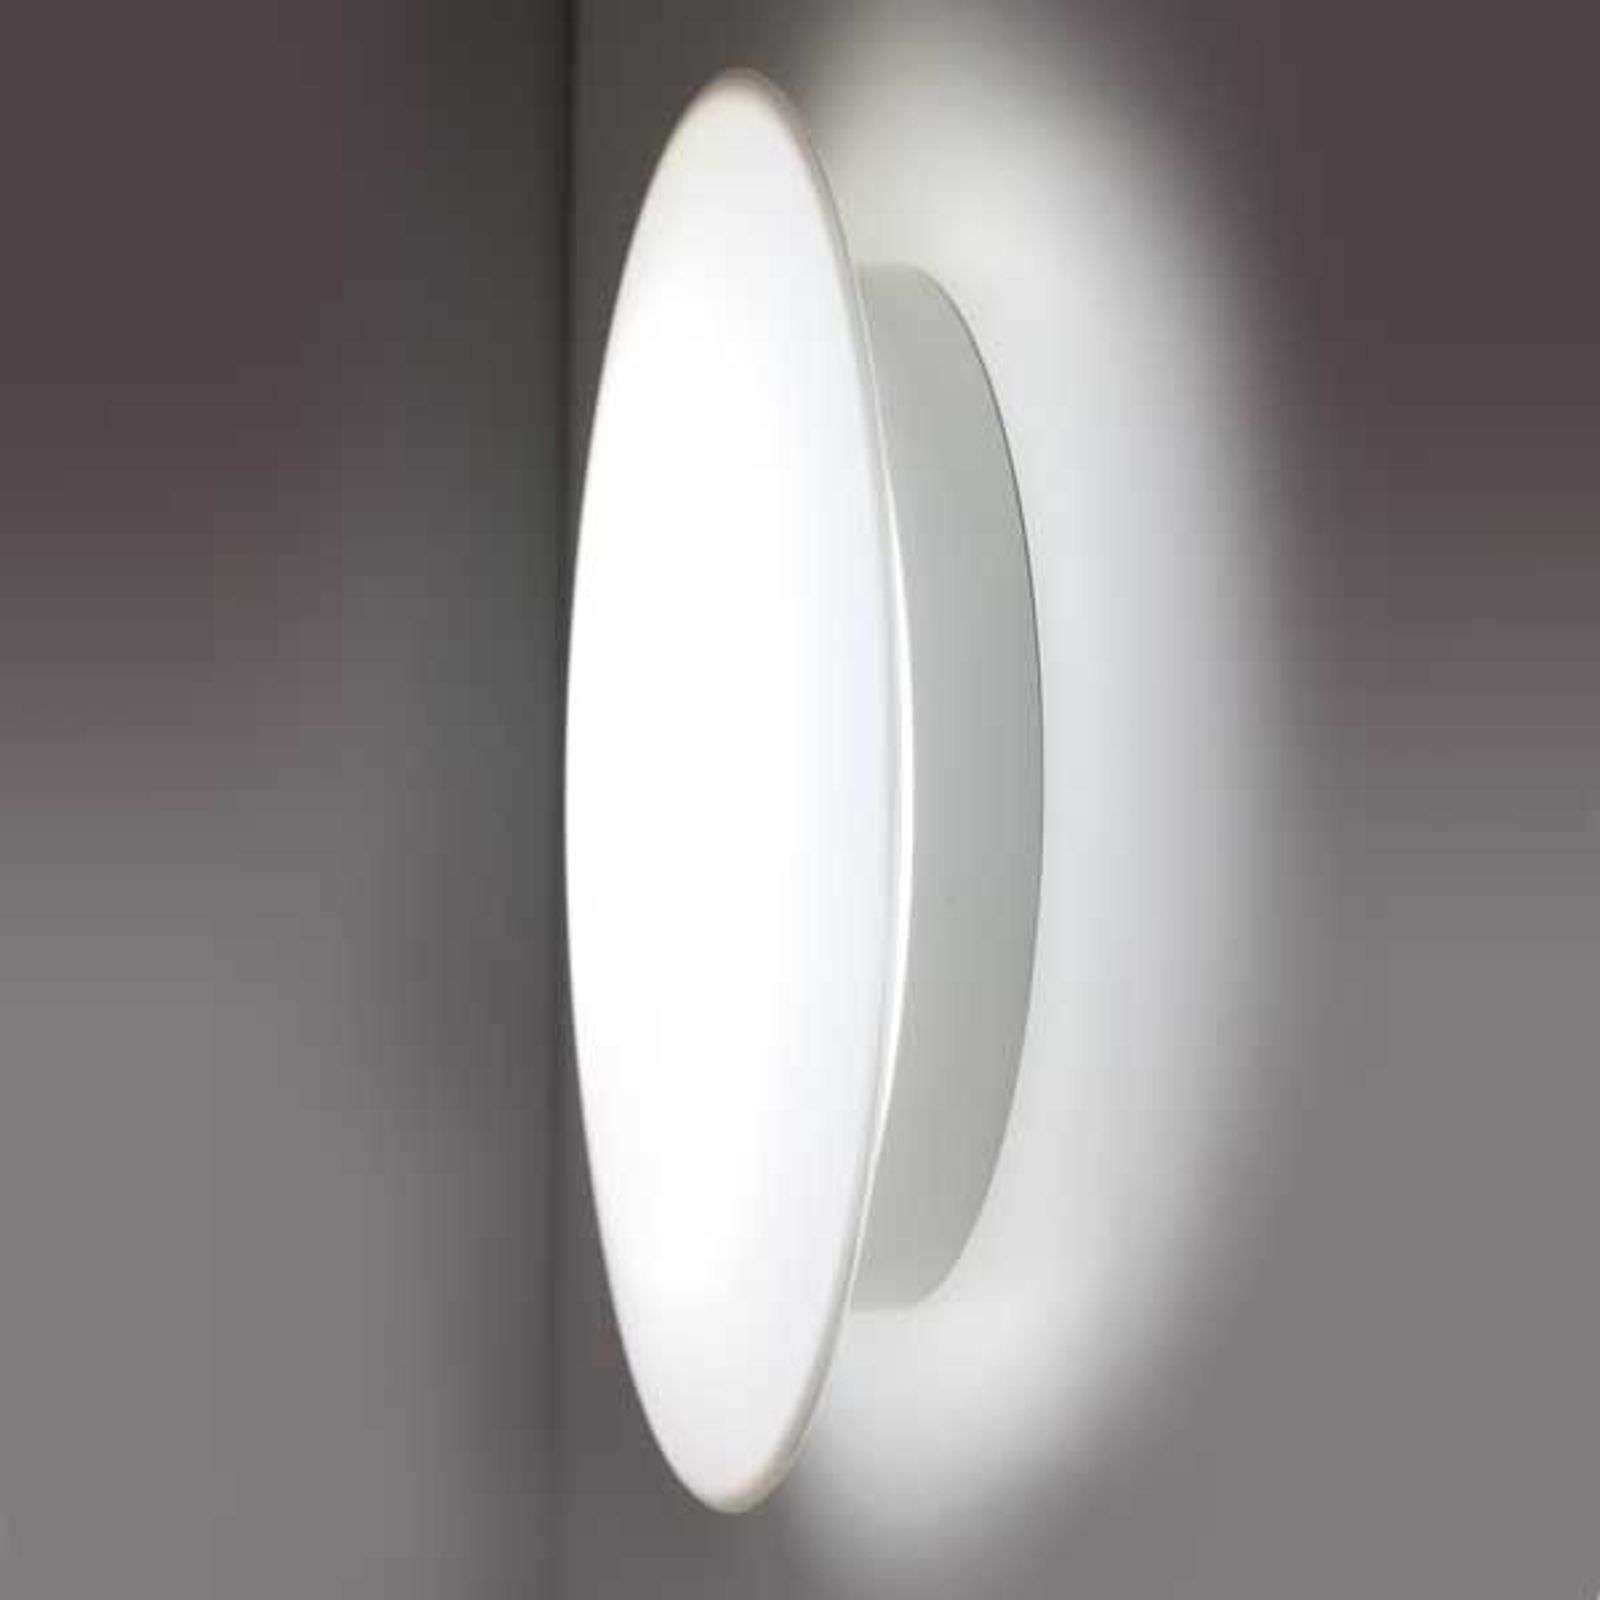 Applique ou plafonnier SUN 3 LED 13 W blanc chaud